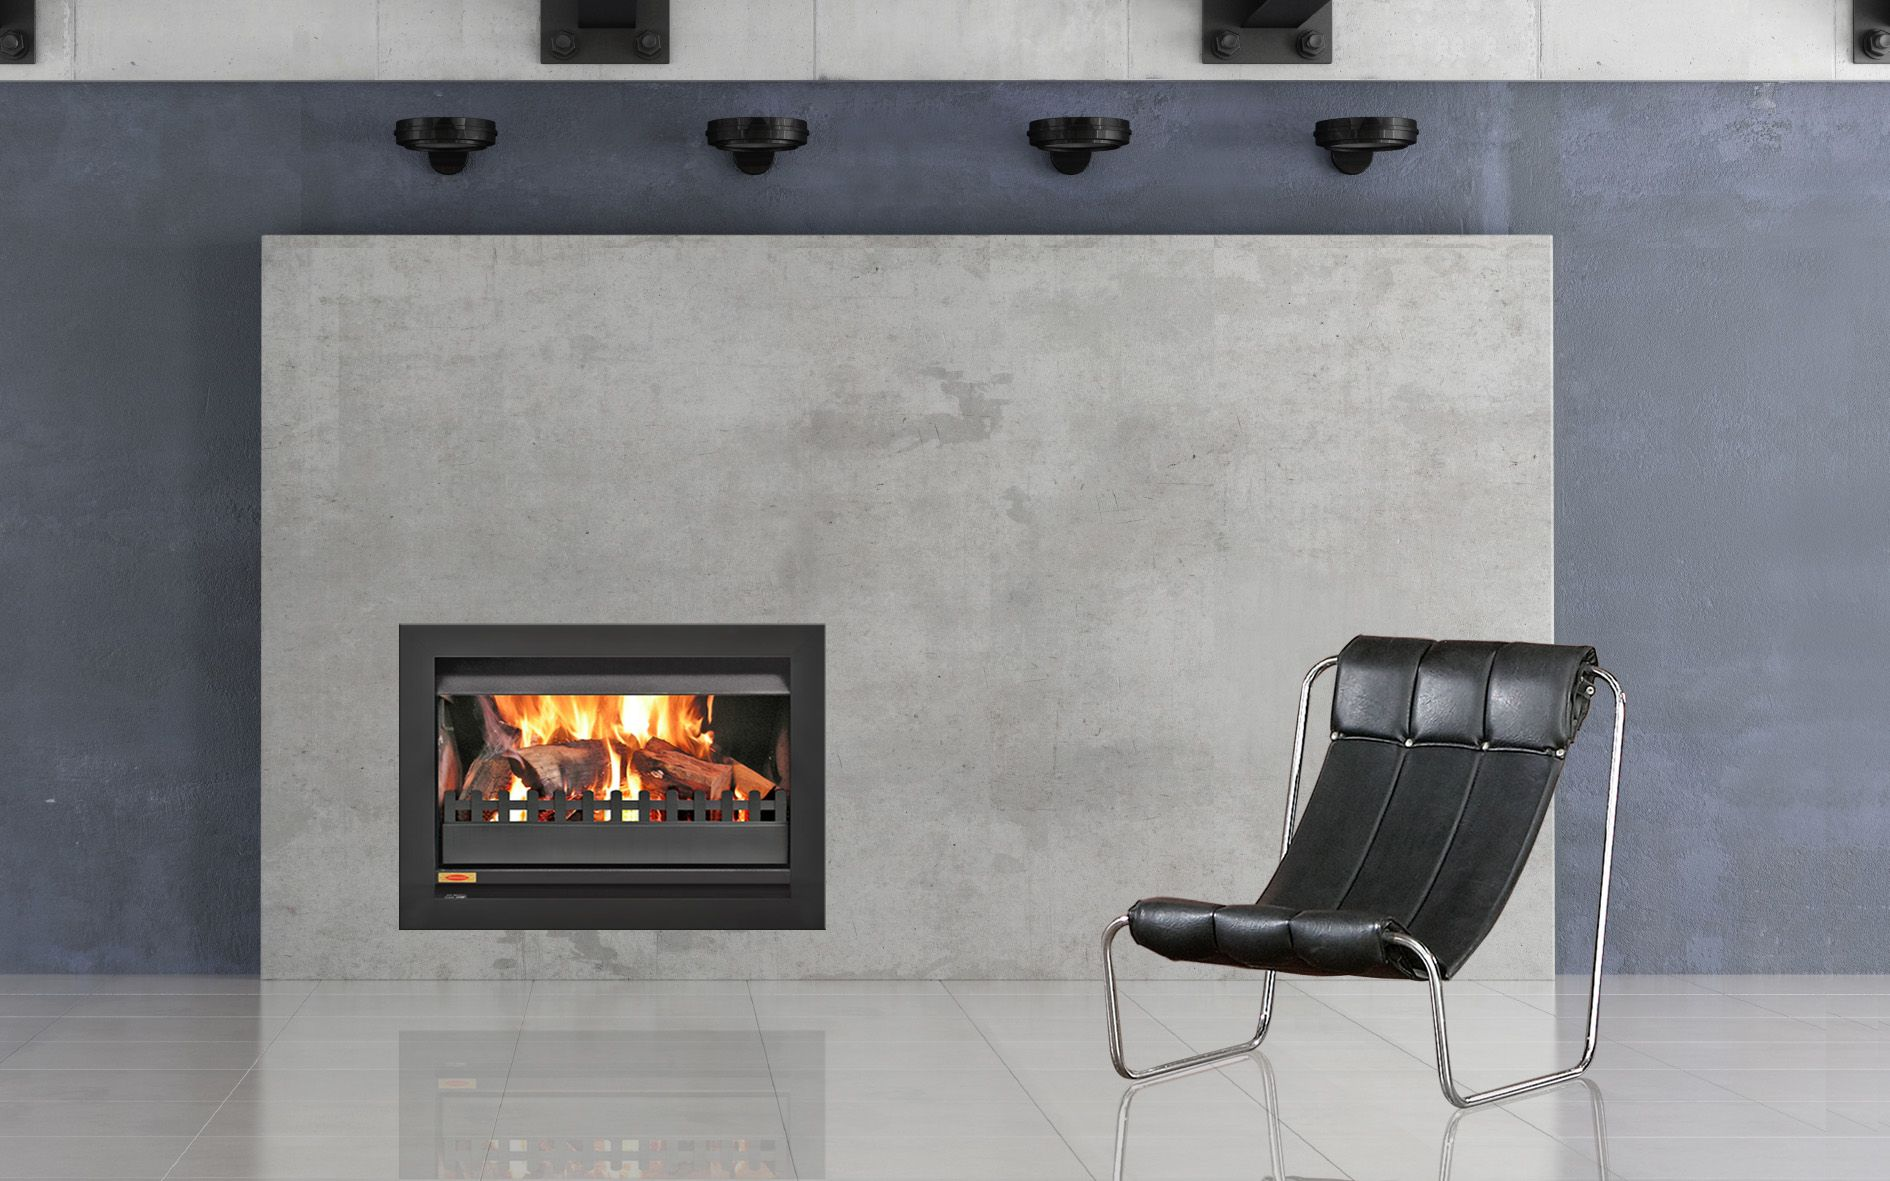 Jetmaster 850 Universal Open Woodfire Enhance The Comfort And